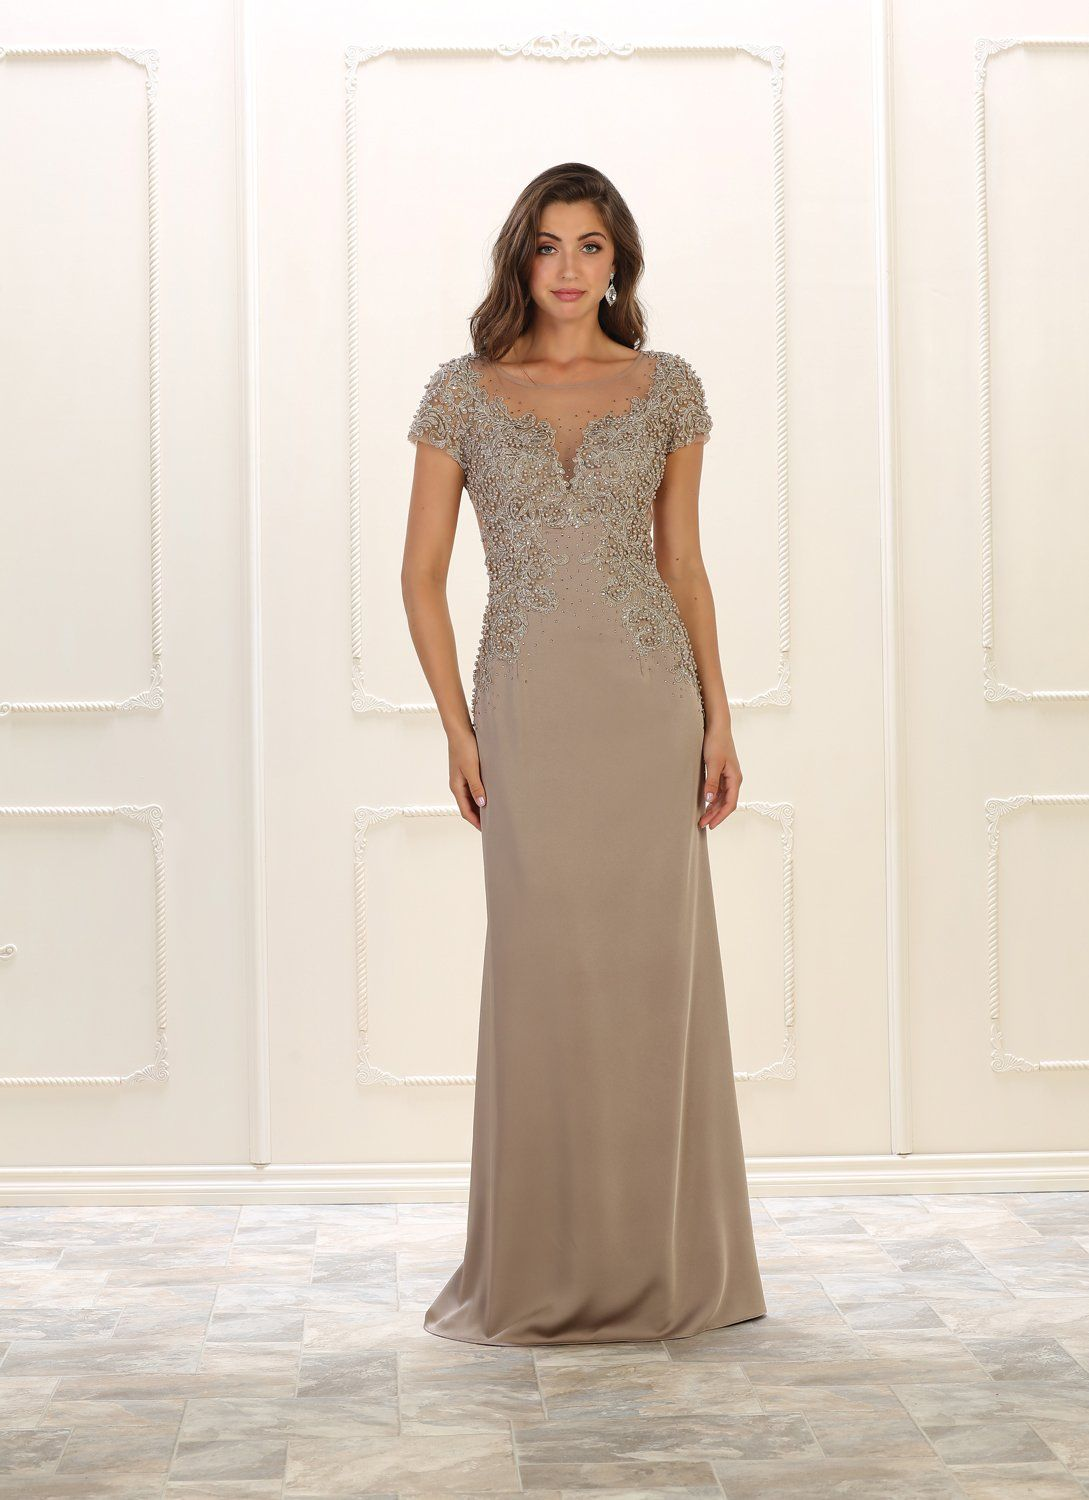 d9d997c50d0 This simply gorgeous long prom dress features an embellish pearls and  rhinestones embroideries over sheer mesh material at the bodice area and  starch Ity ...